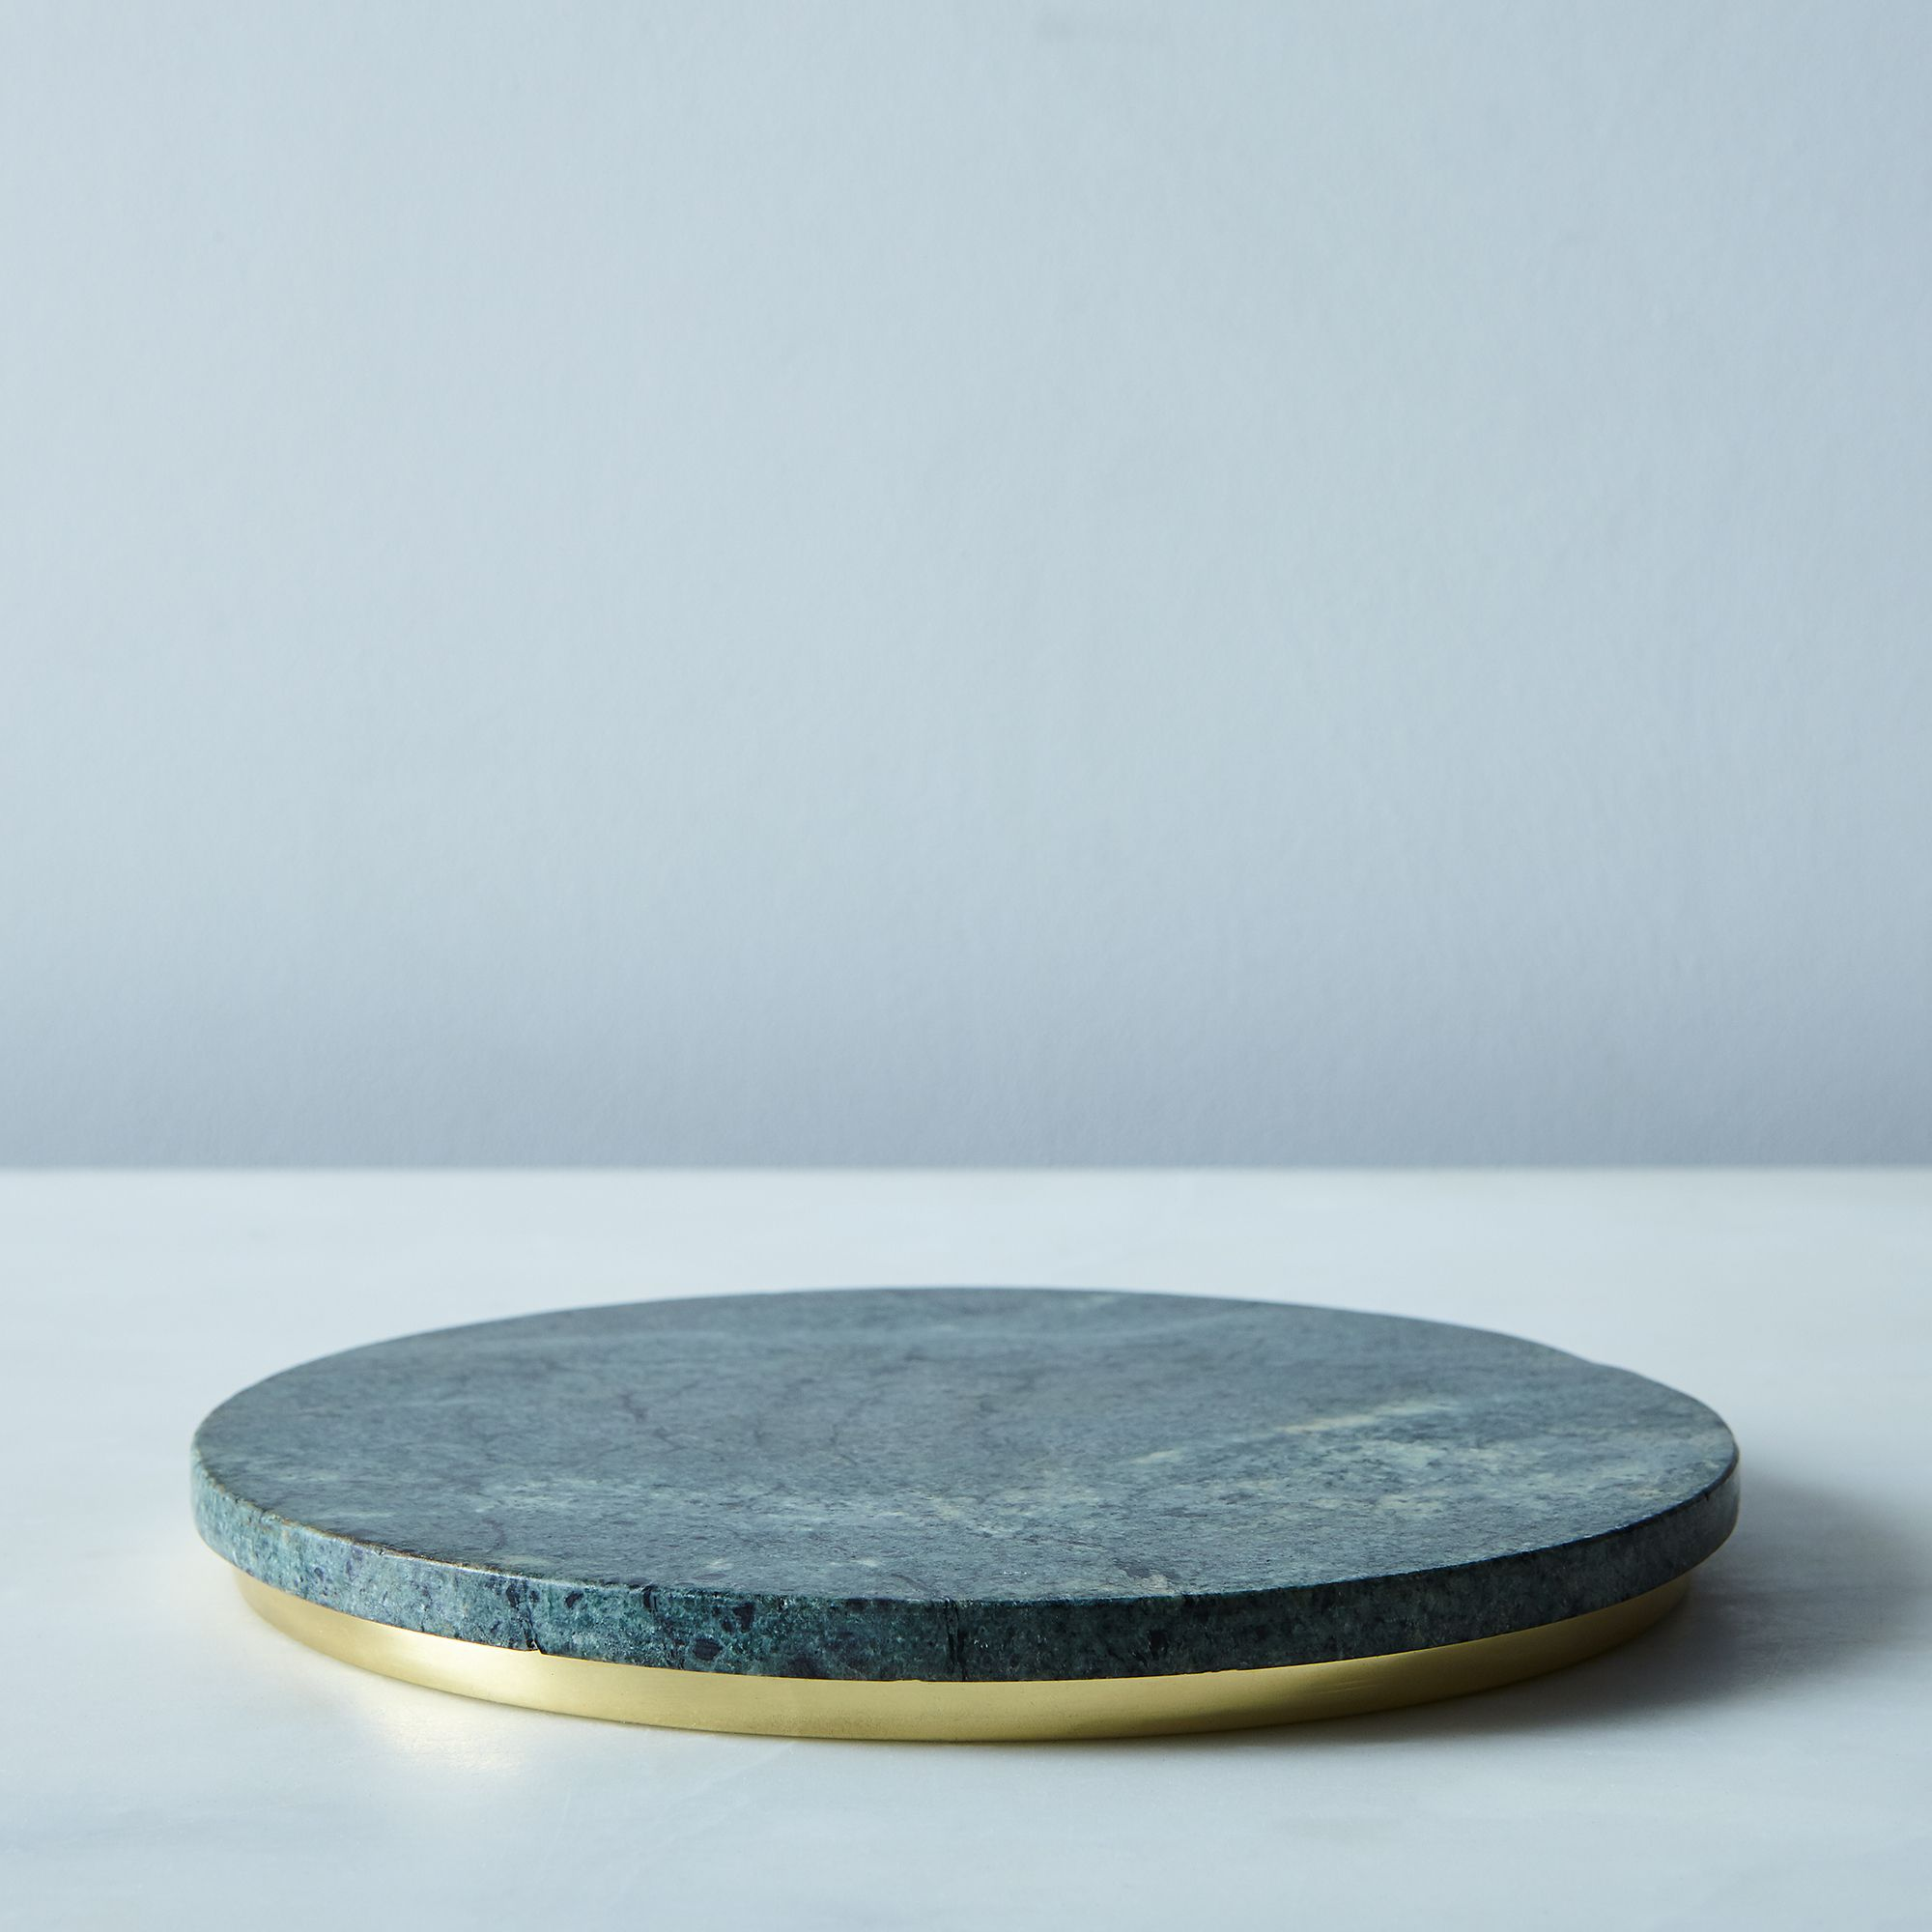 Buy Now Marble & Metal Trivet – Green & Brass Before Too Late